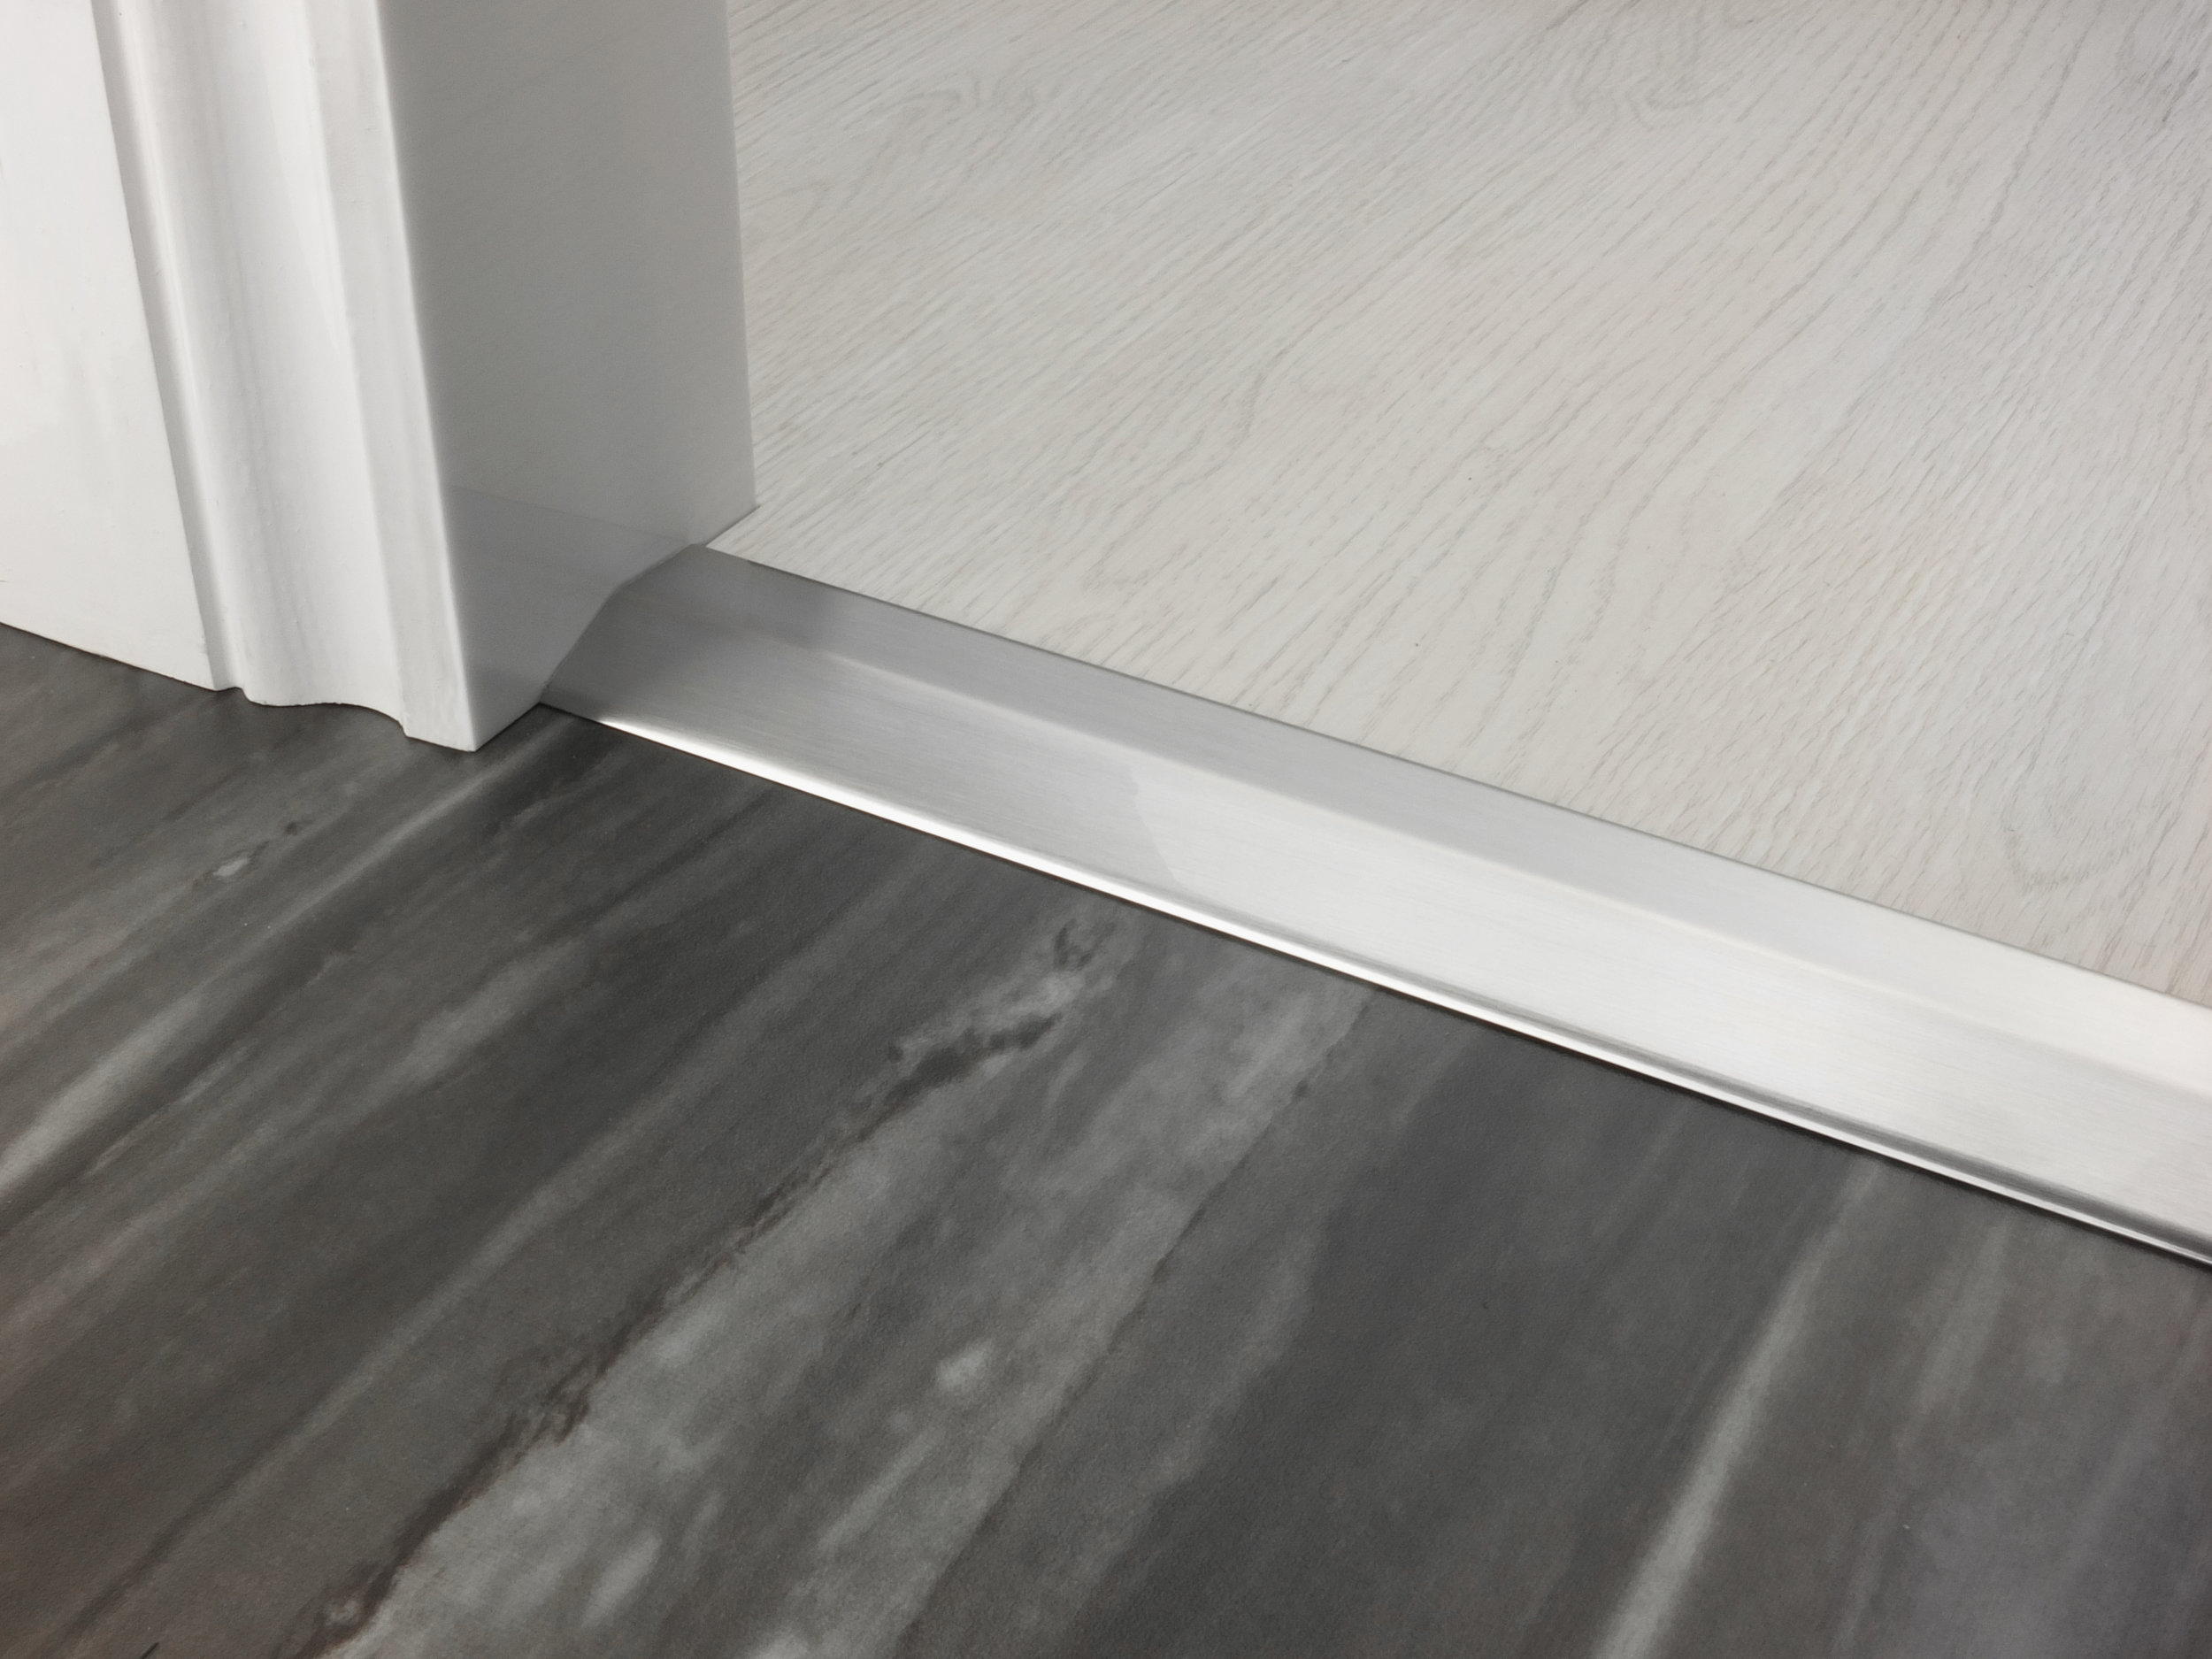 stairrods-doorbar-brushed-chrome-two-way-ramp-8-9mm.jpg